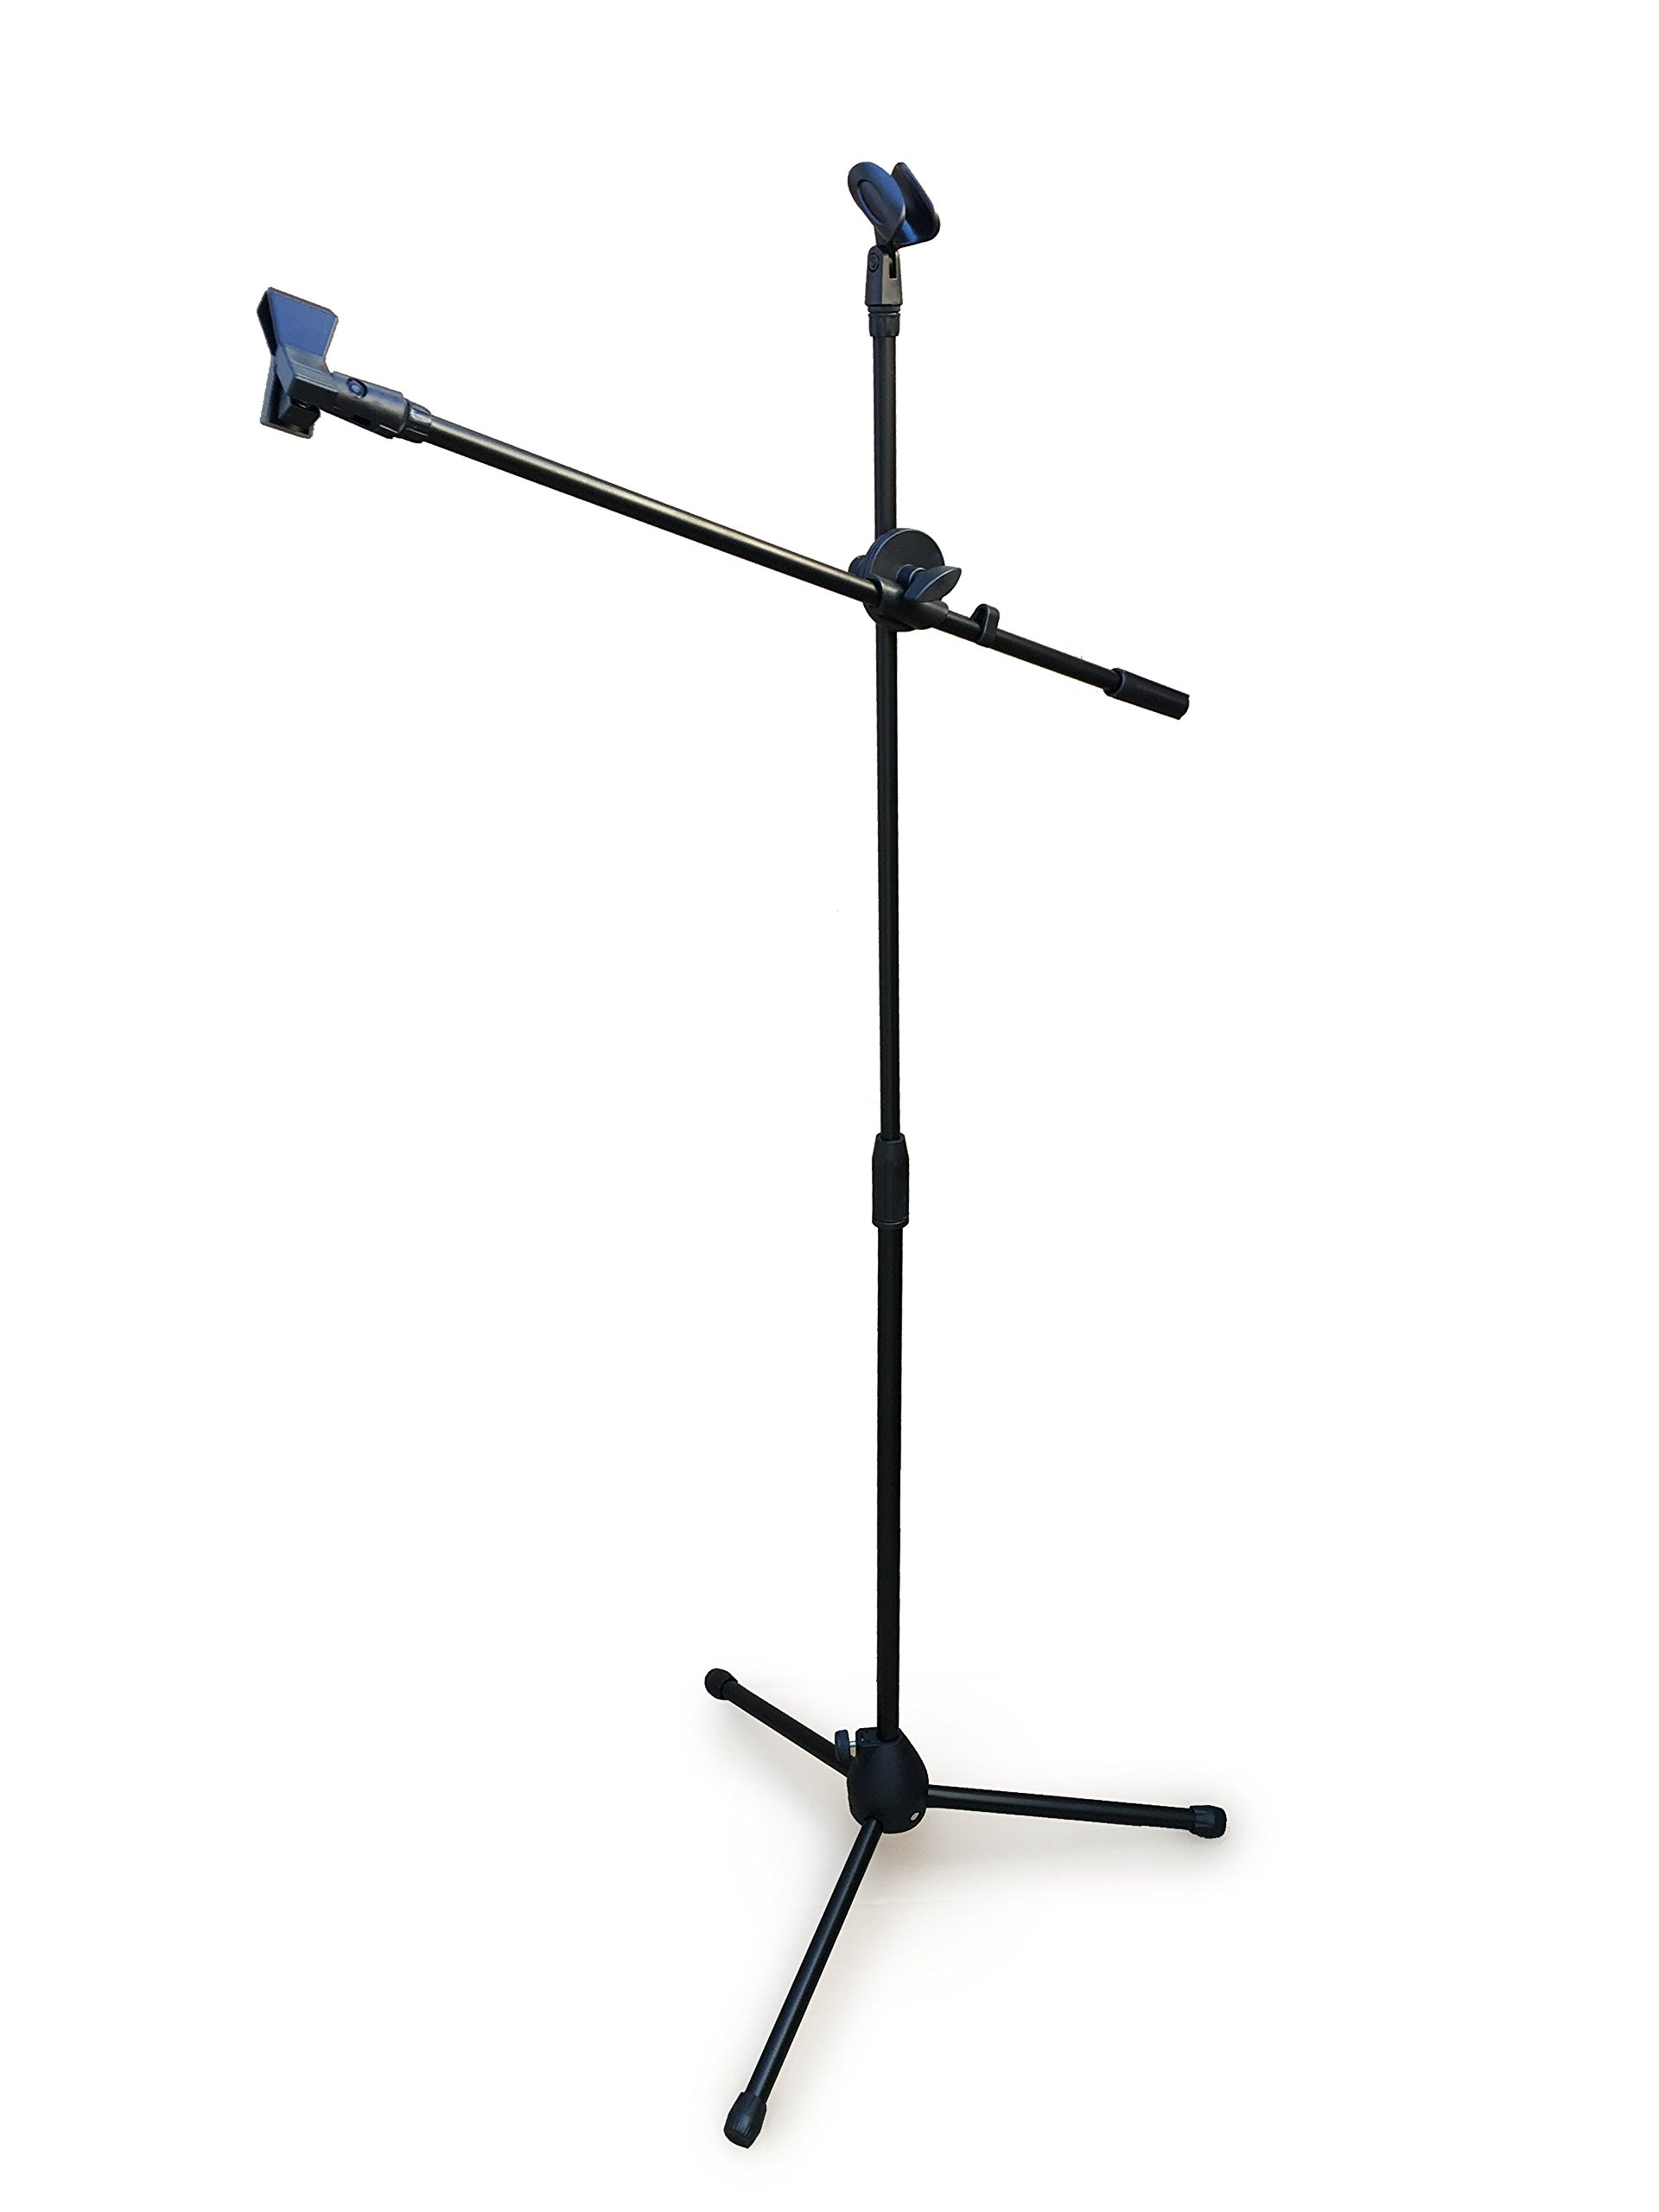 Black Tripod Boom Microphone Stand - Convenient, Portable, and Adjustable Mic Stand